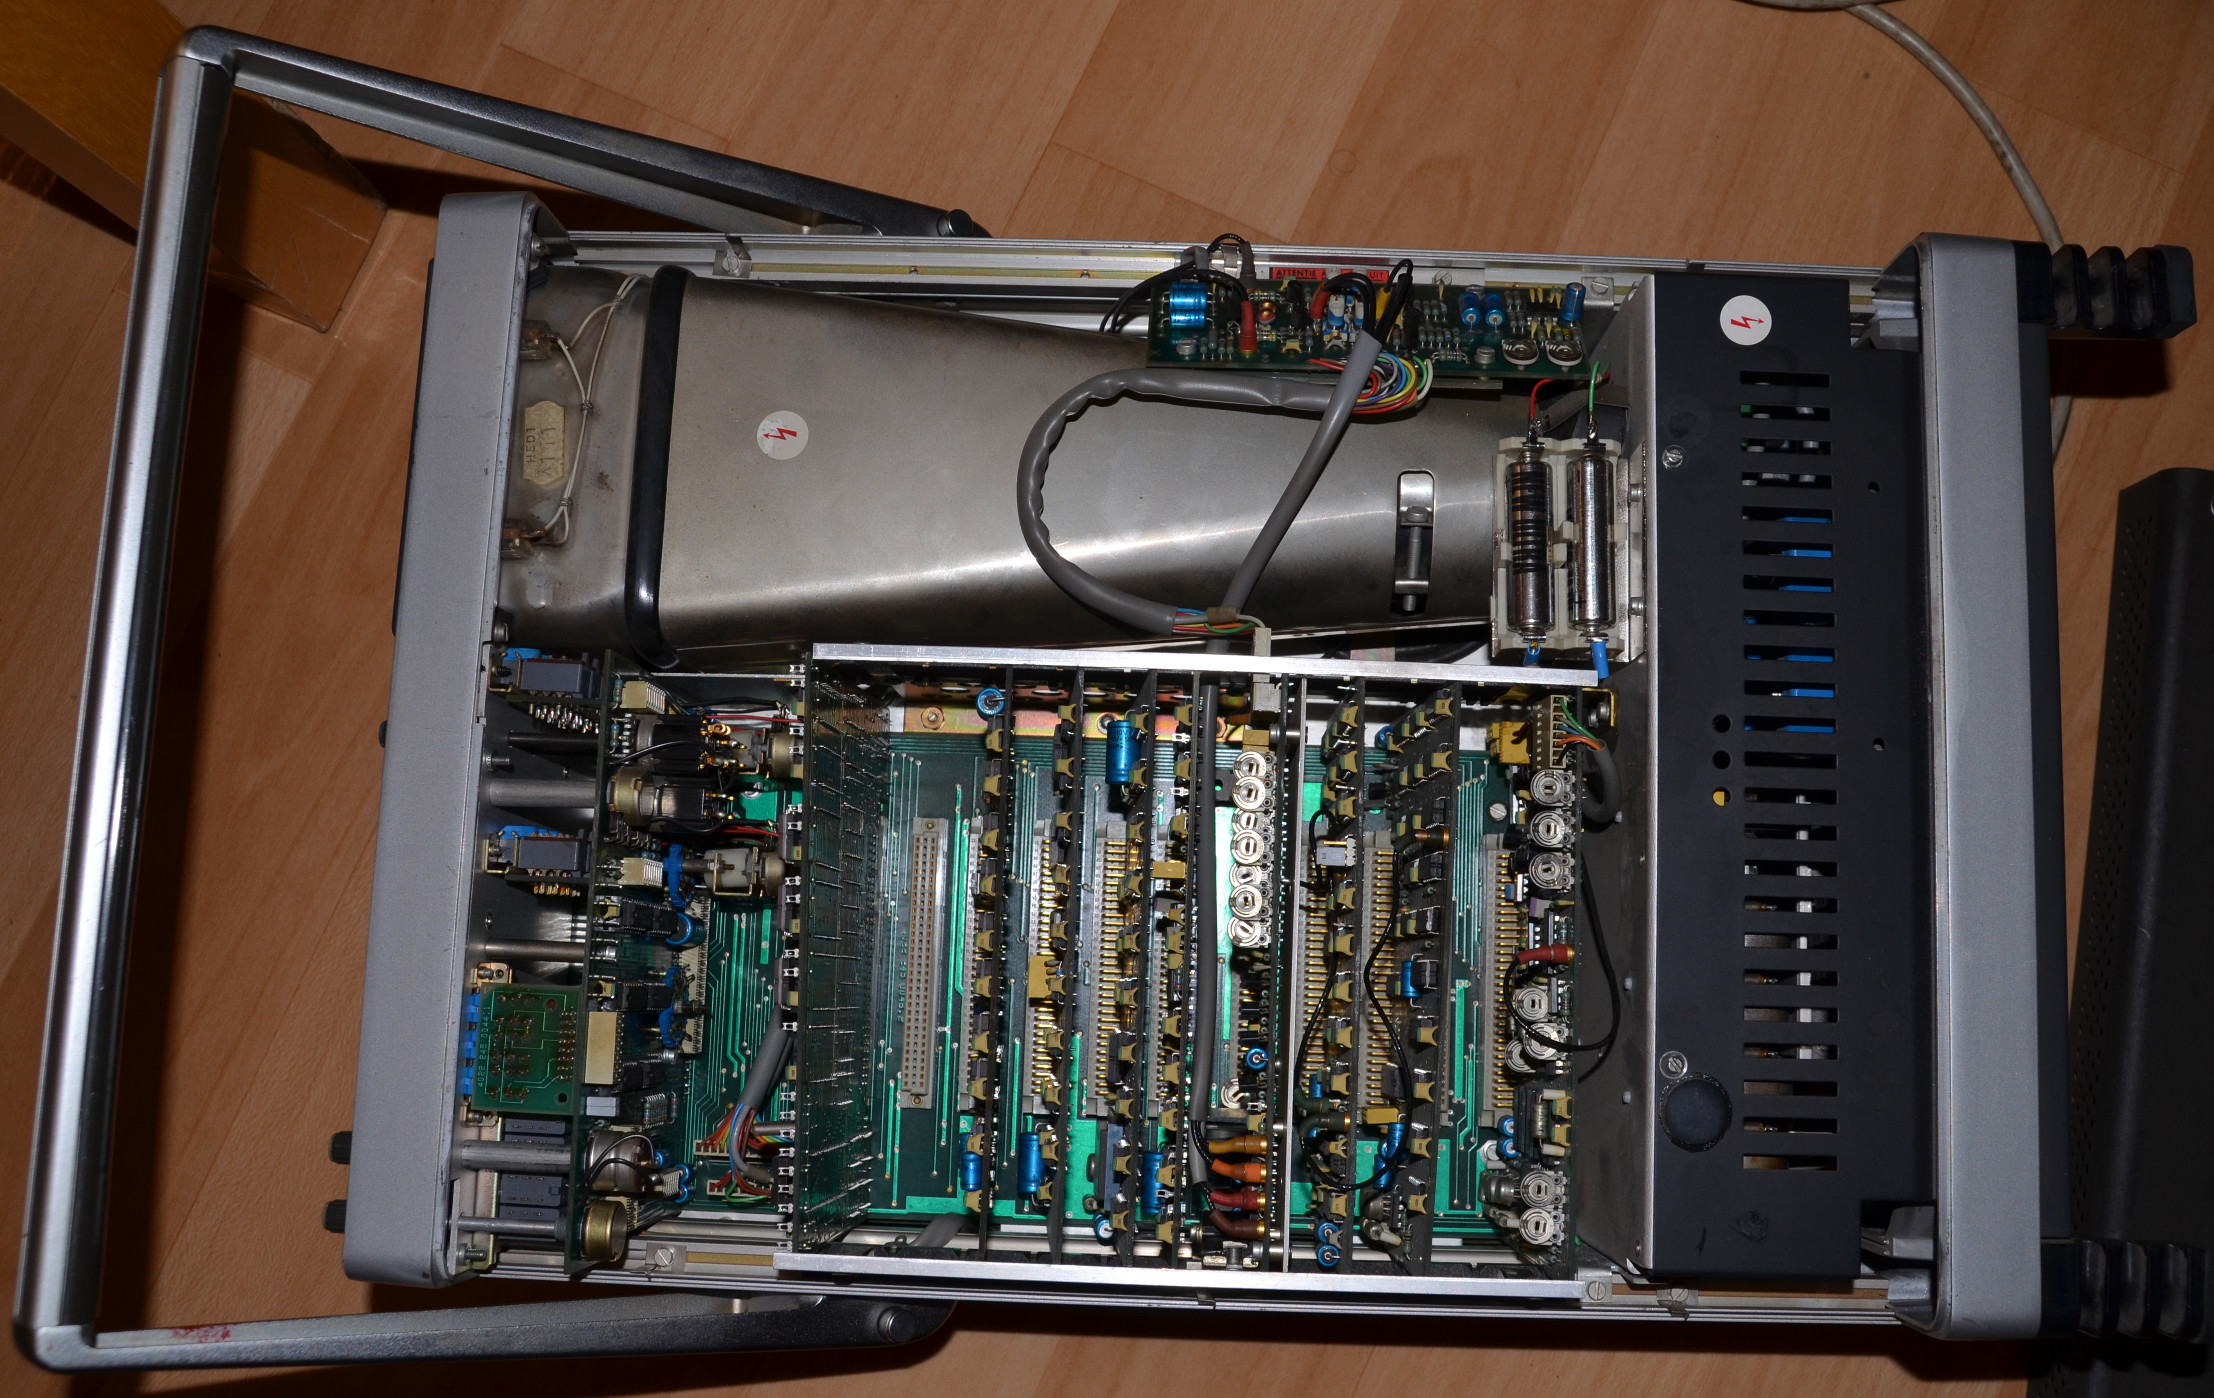 PM3310 Inside view